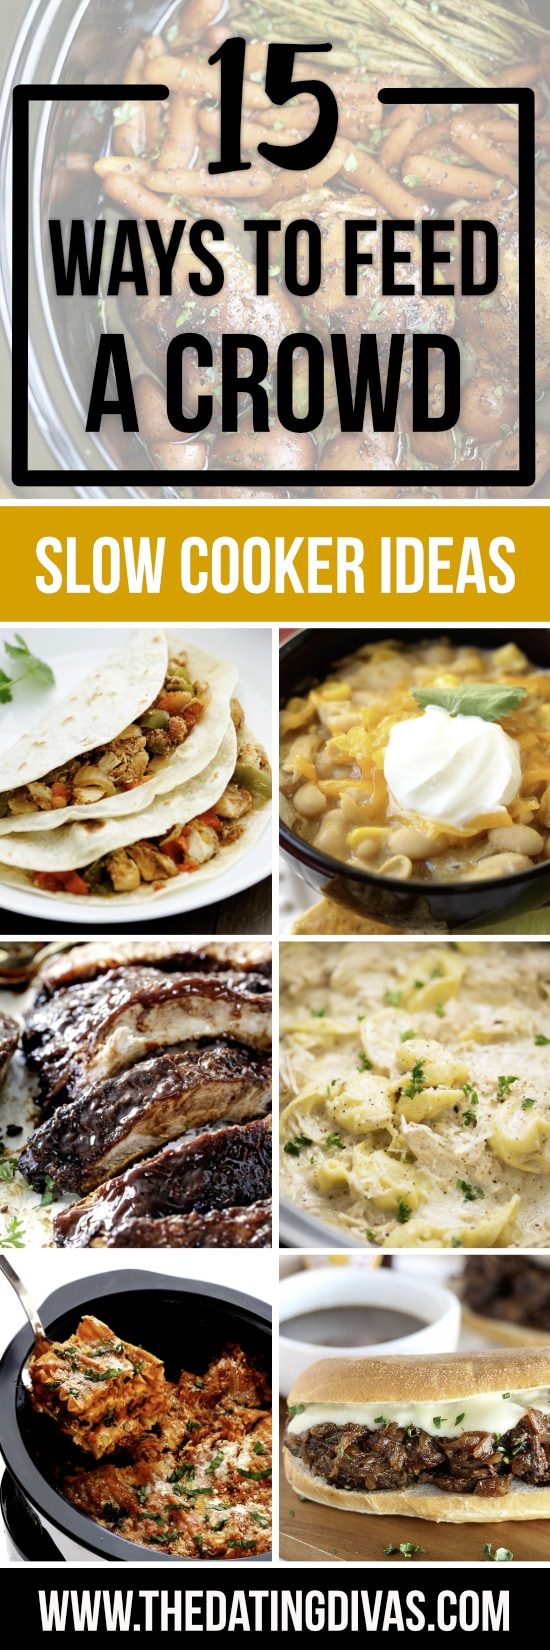 Slow Cooker Recipes for a Crowd